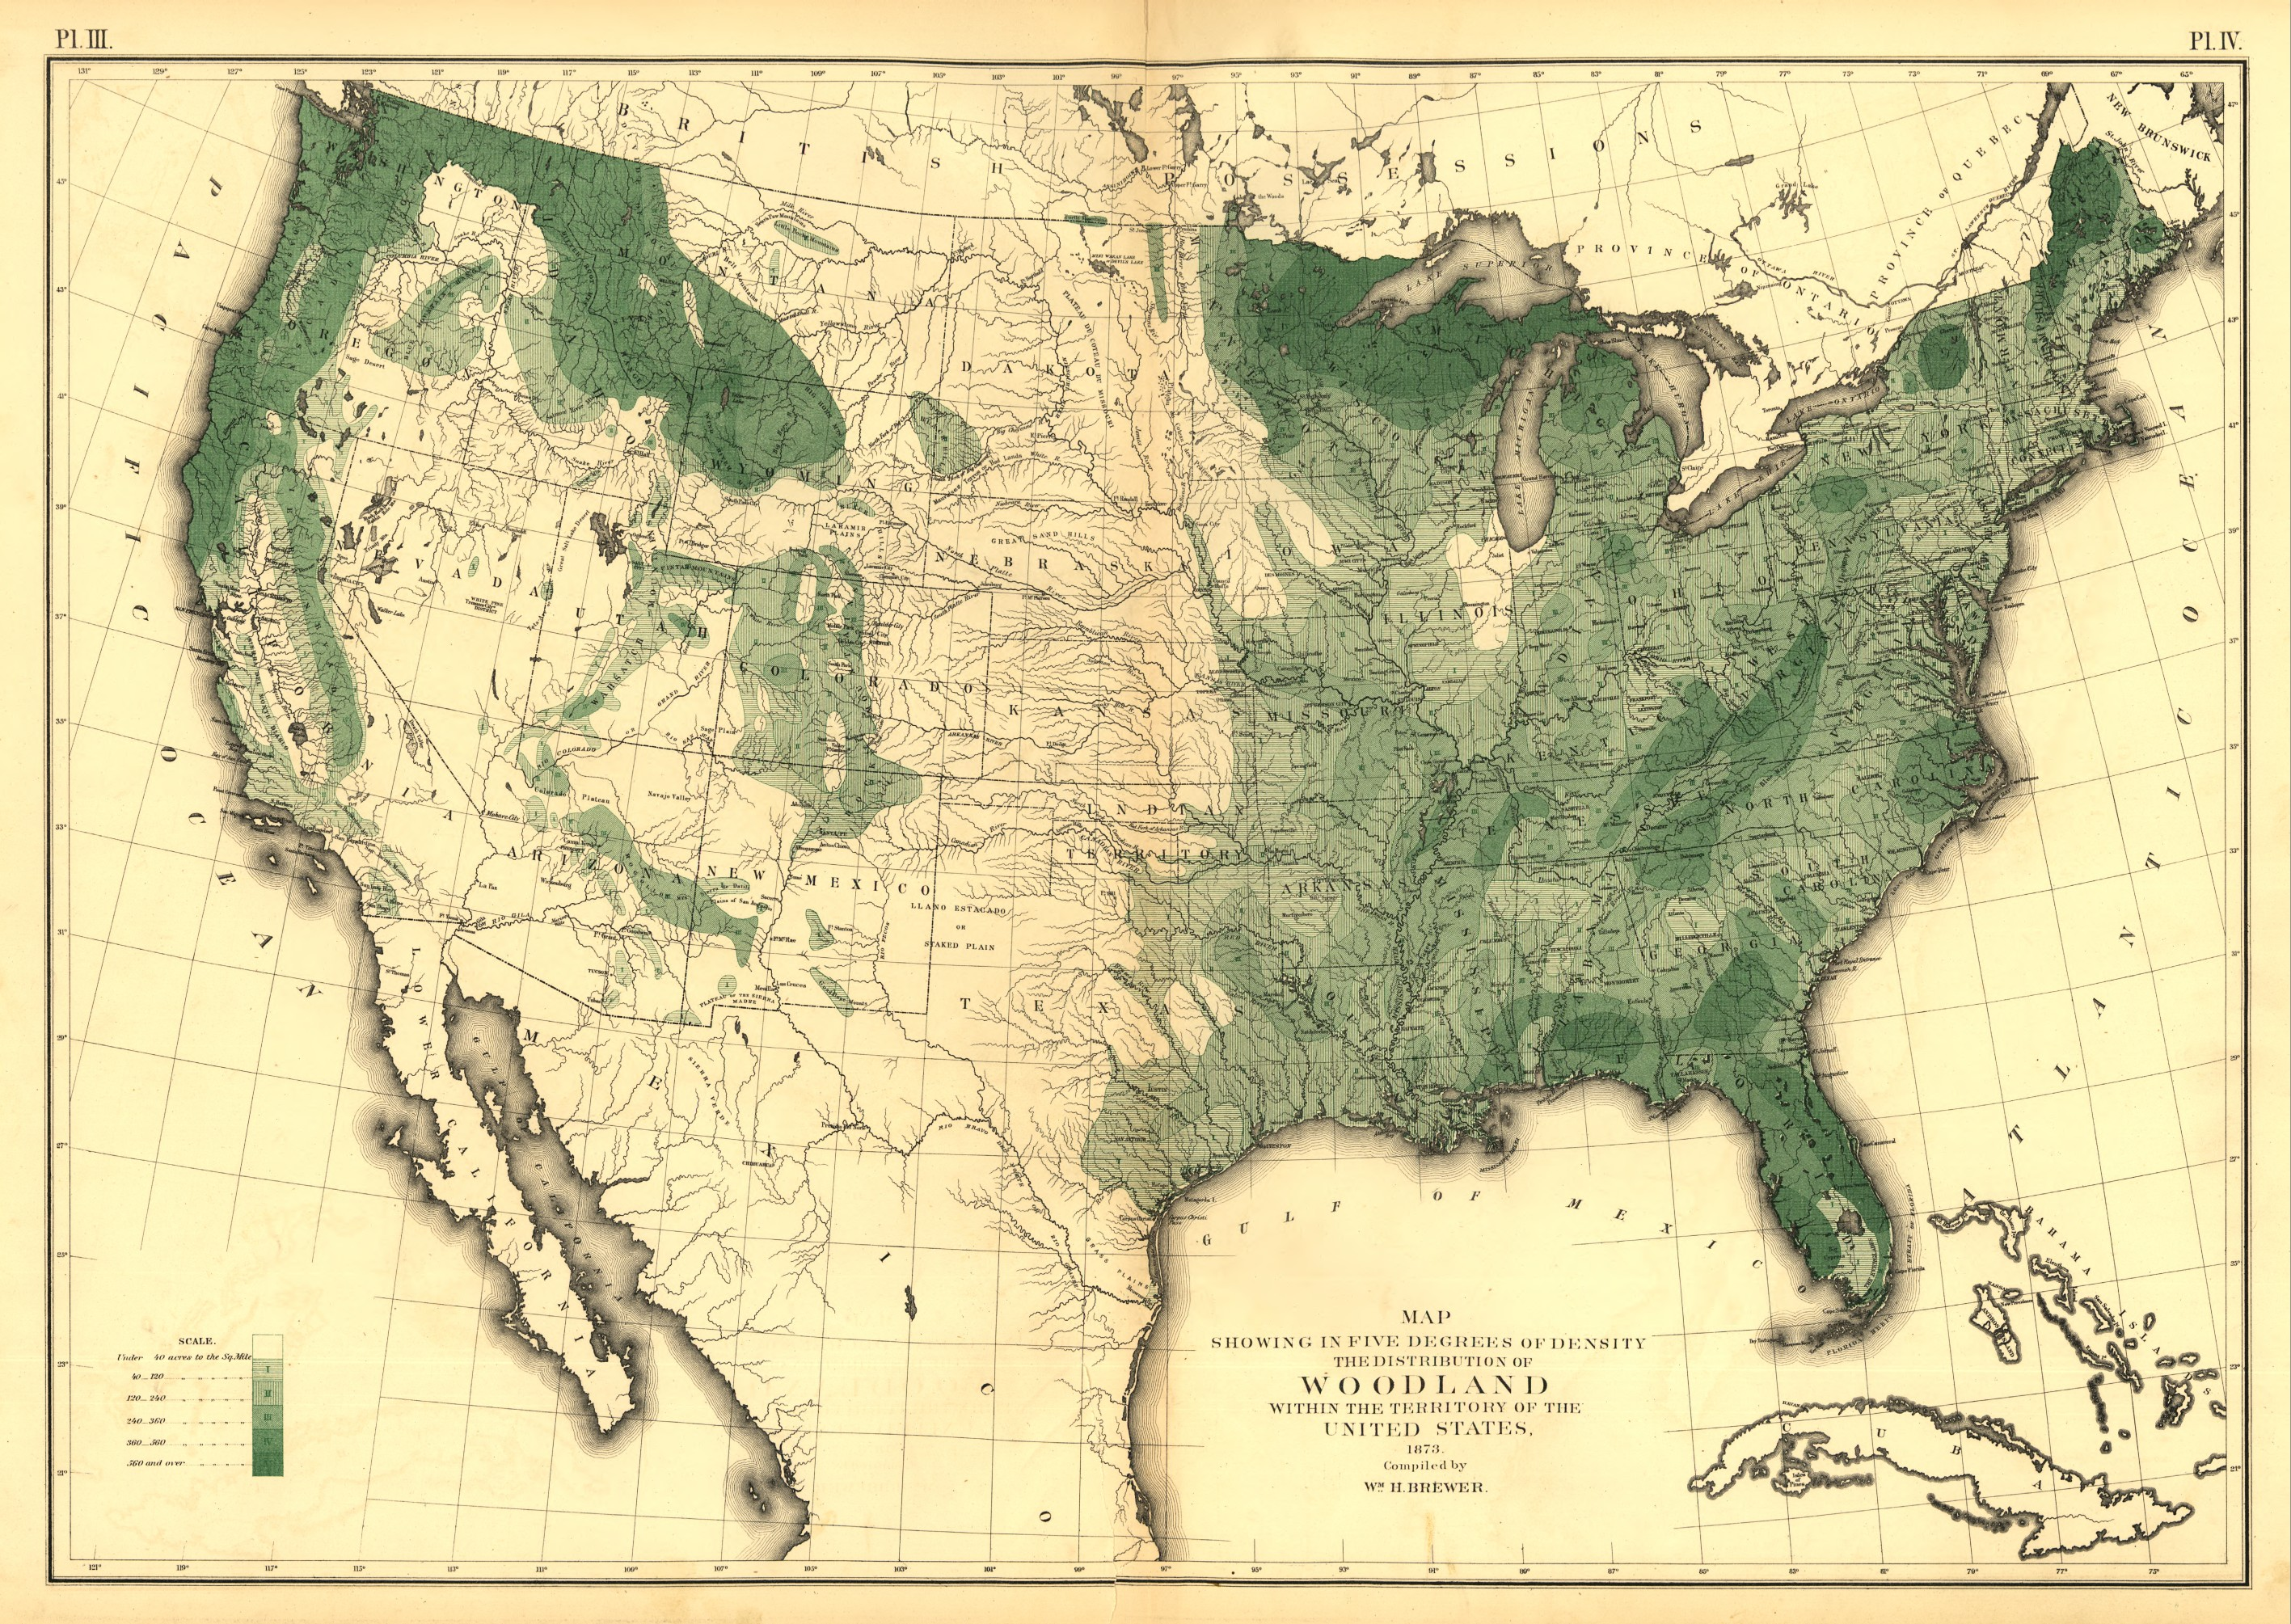 The distribution of woodland within the territory of the U.S. (1873)